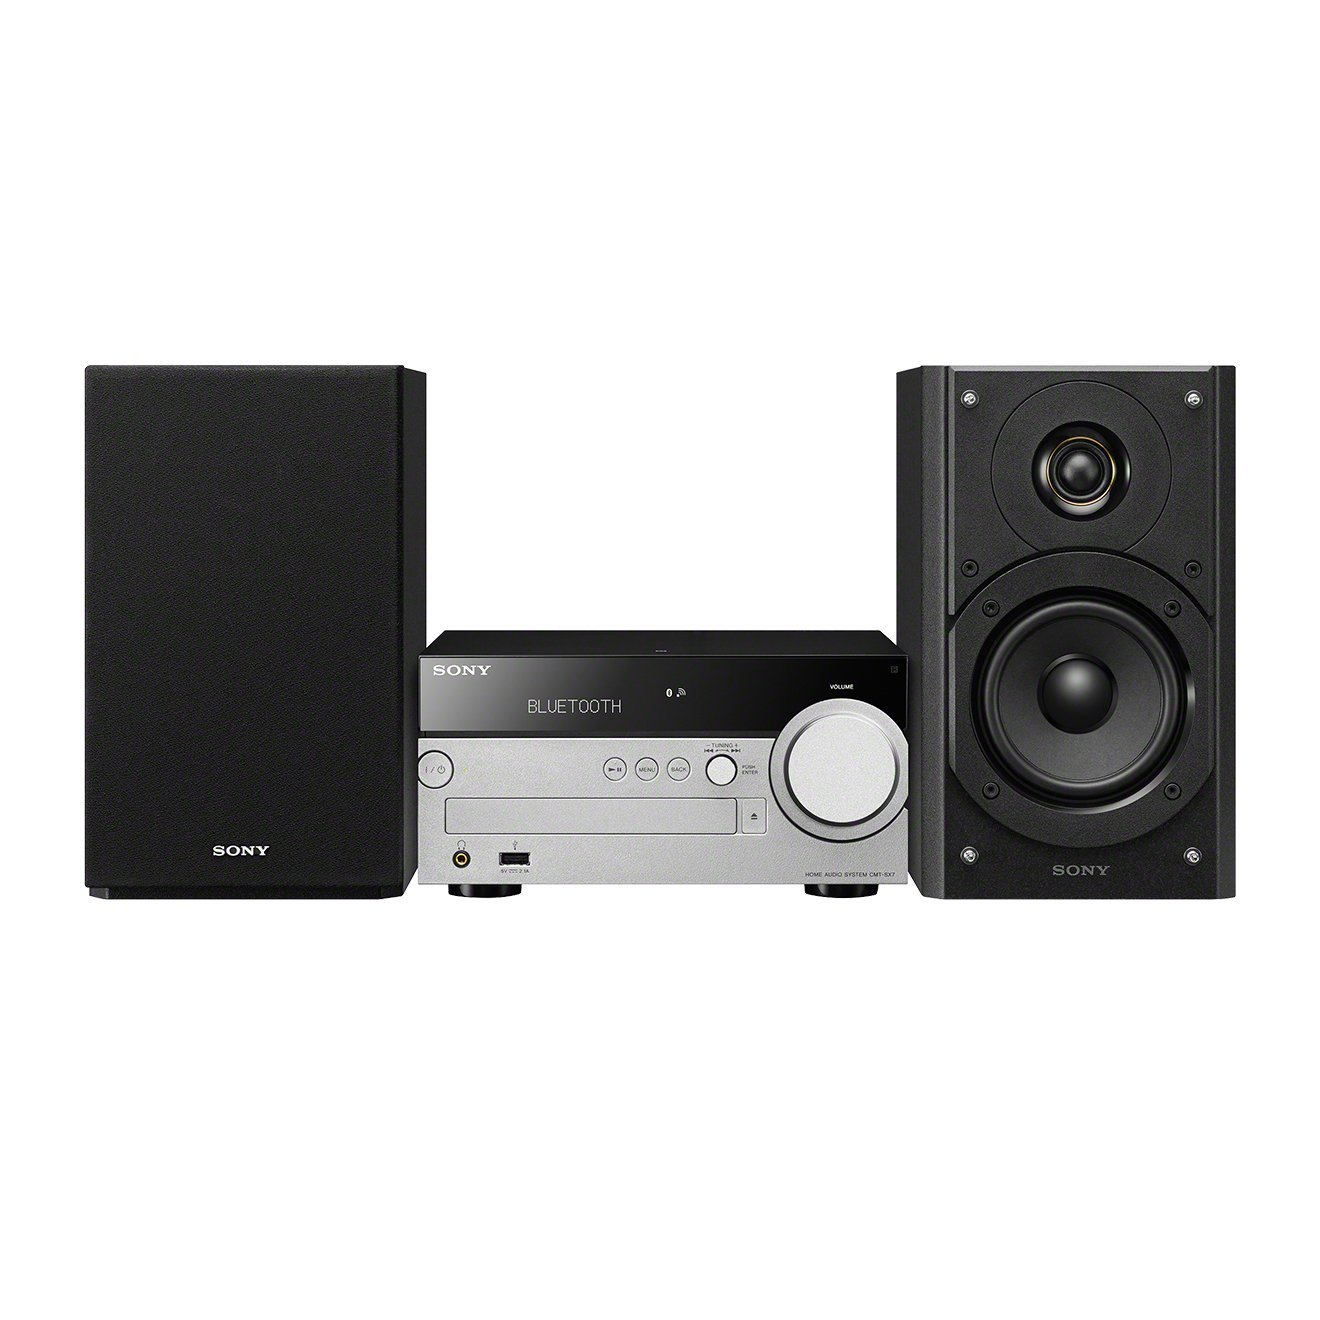 Sony CMT-SX7 - Sistema Hi-Fi Compacto (Bluetooth, NFC, Wi-Fi y Multi-Room ), Negro